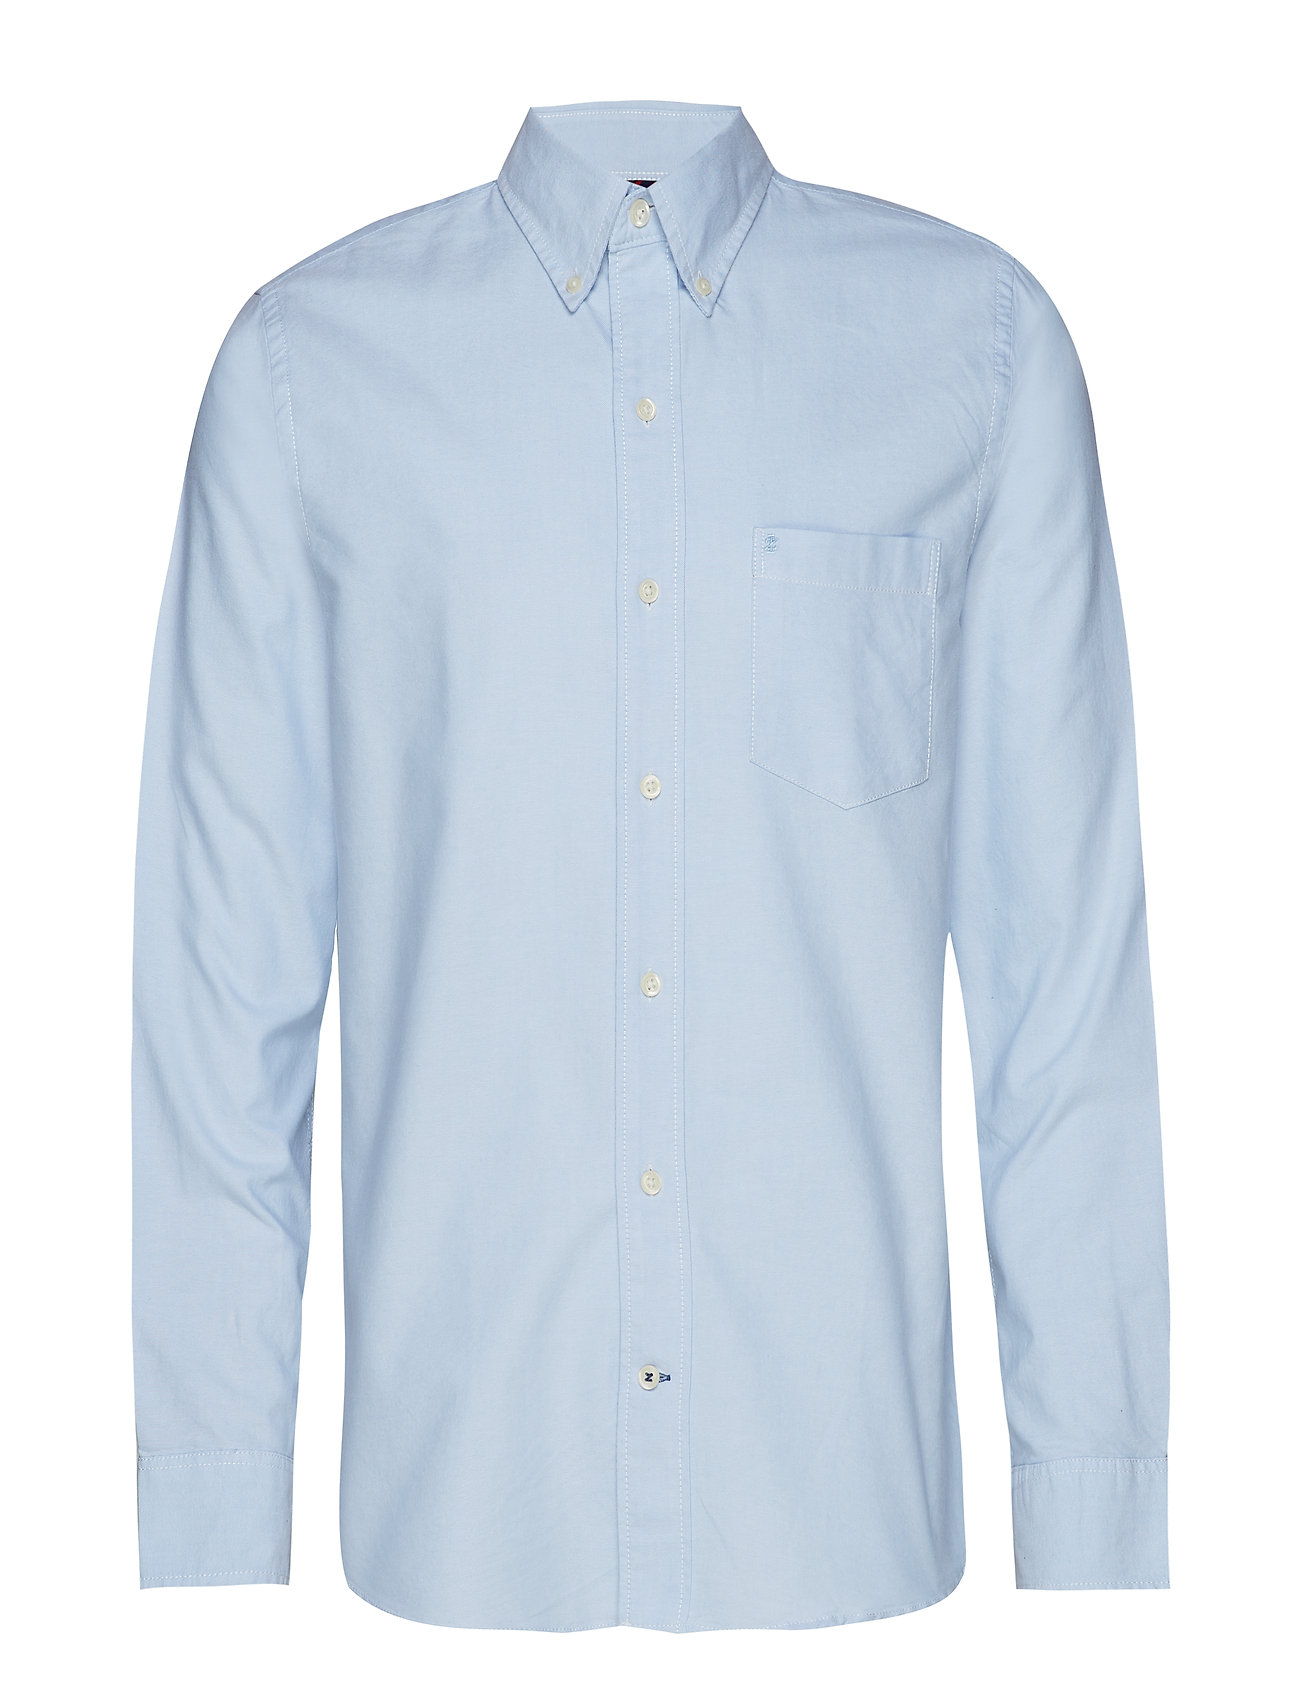 IZOD WASHED OXFORD BD SHIRT - BLUE BELL